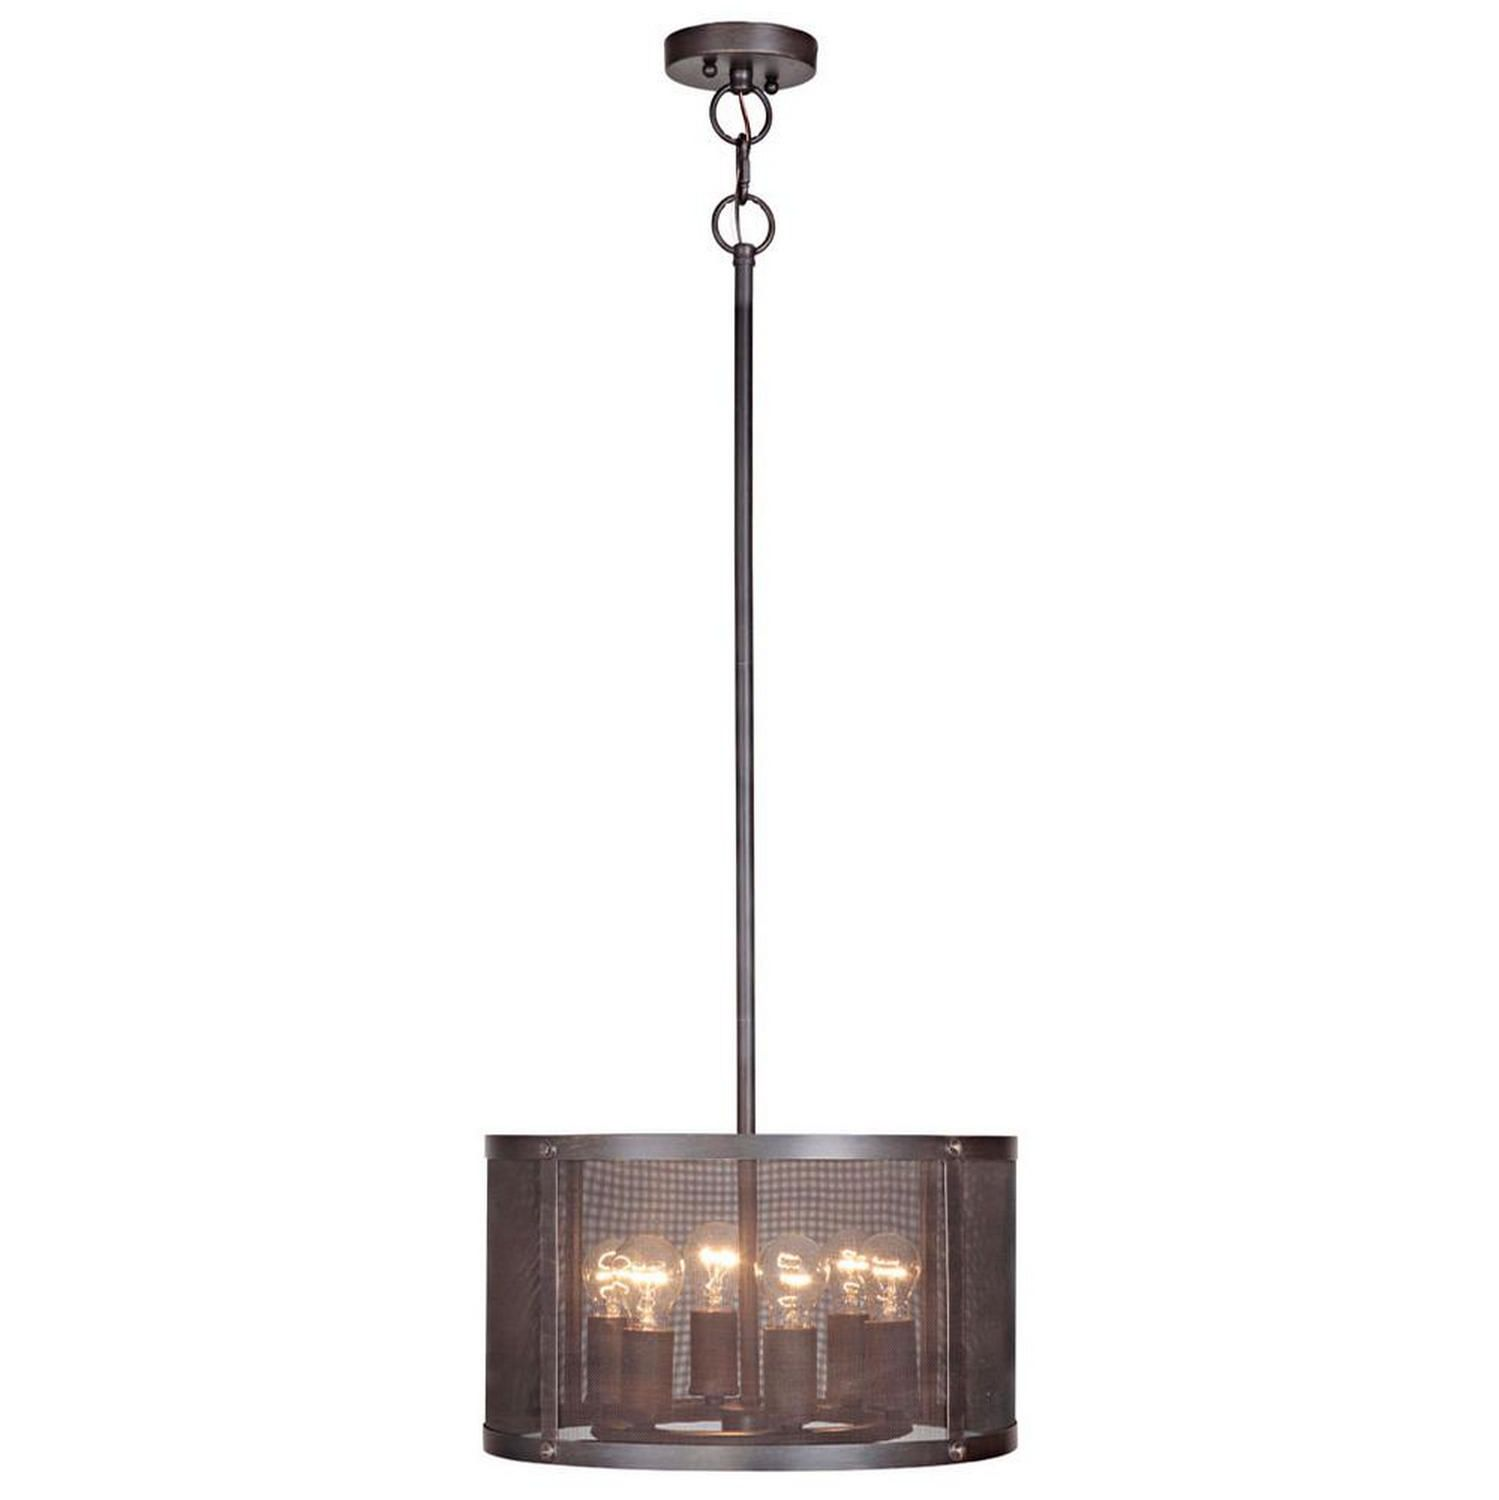 This Six Light Pendant gives you the option to do an over-sized pendant over the island or to be the chandelier over a table.